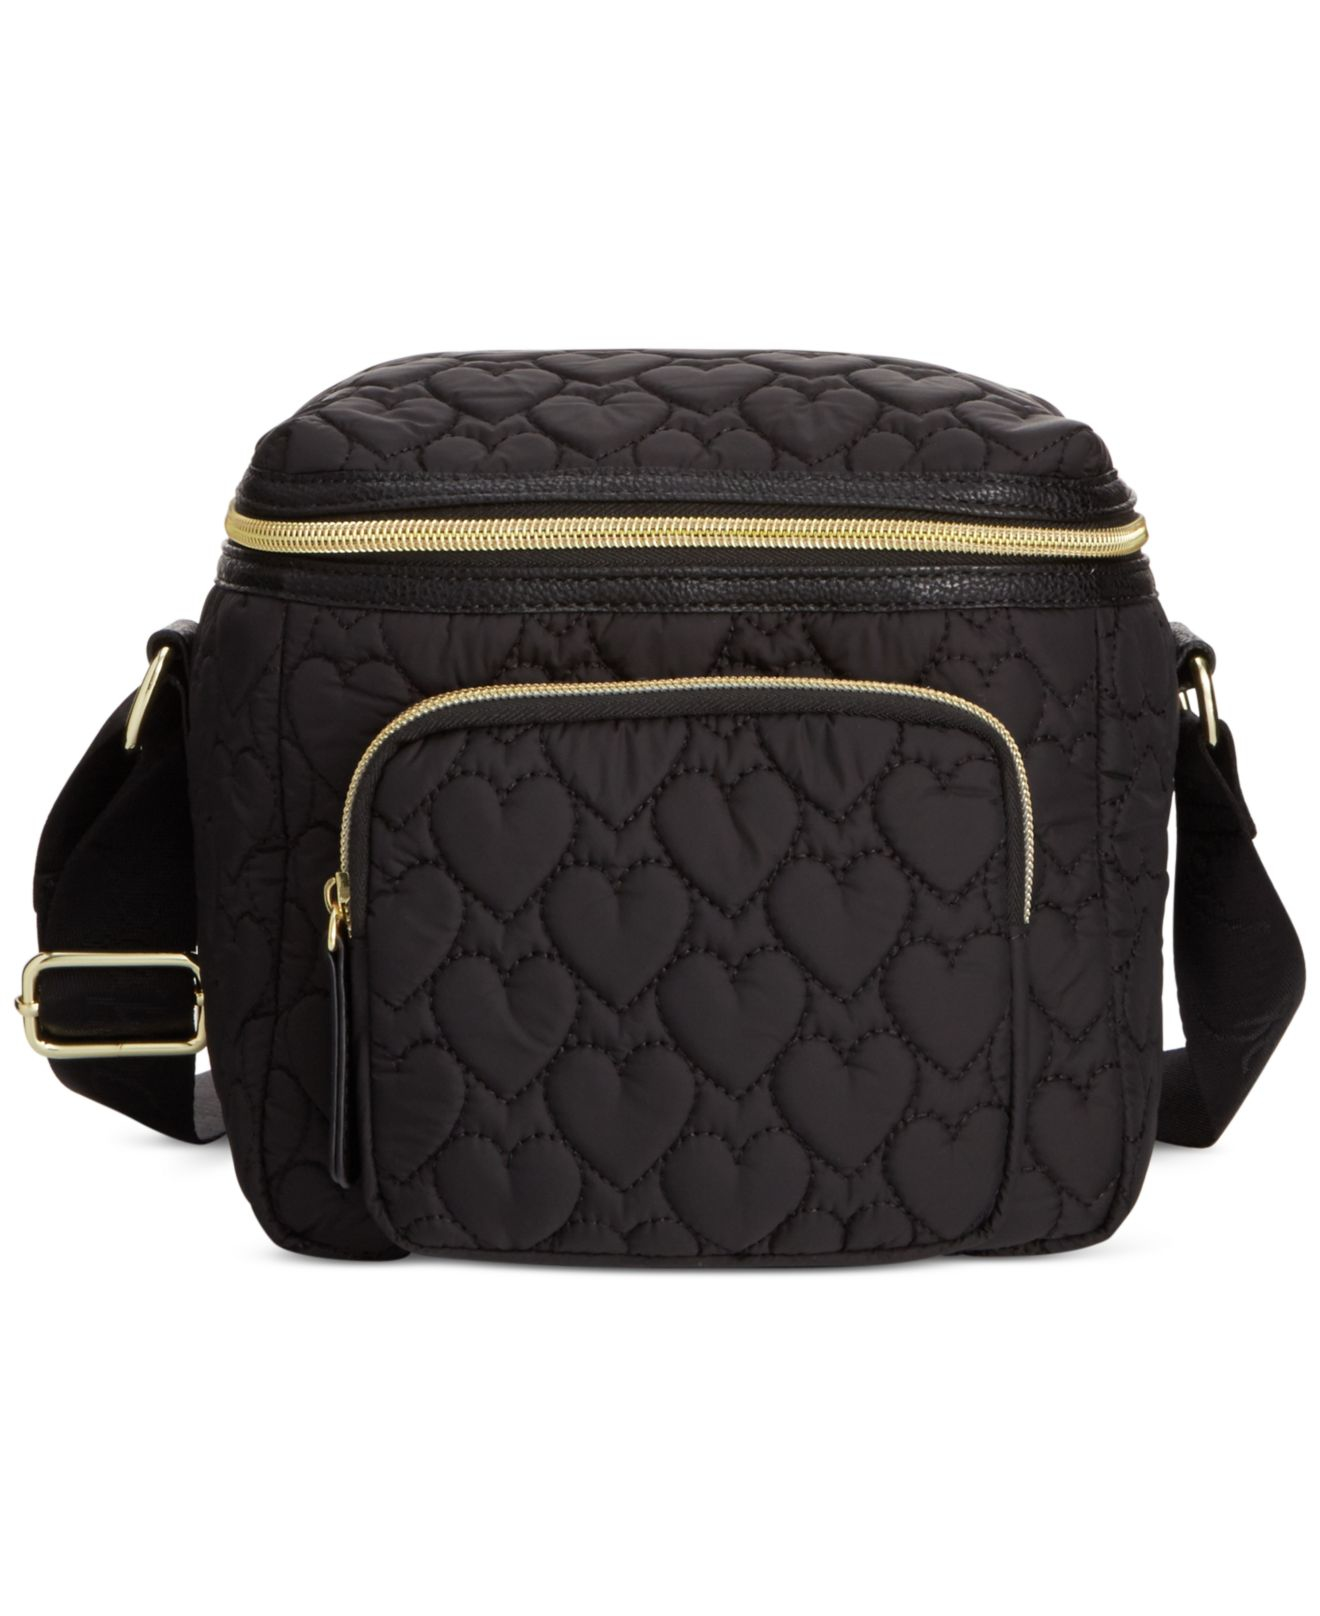 Betsey Johnson Cire Quilted Nylon Lunch Tote In Black Lyst